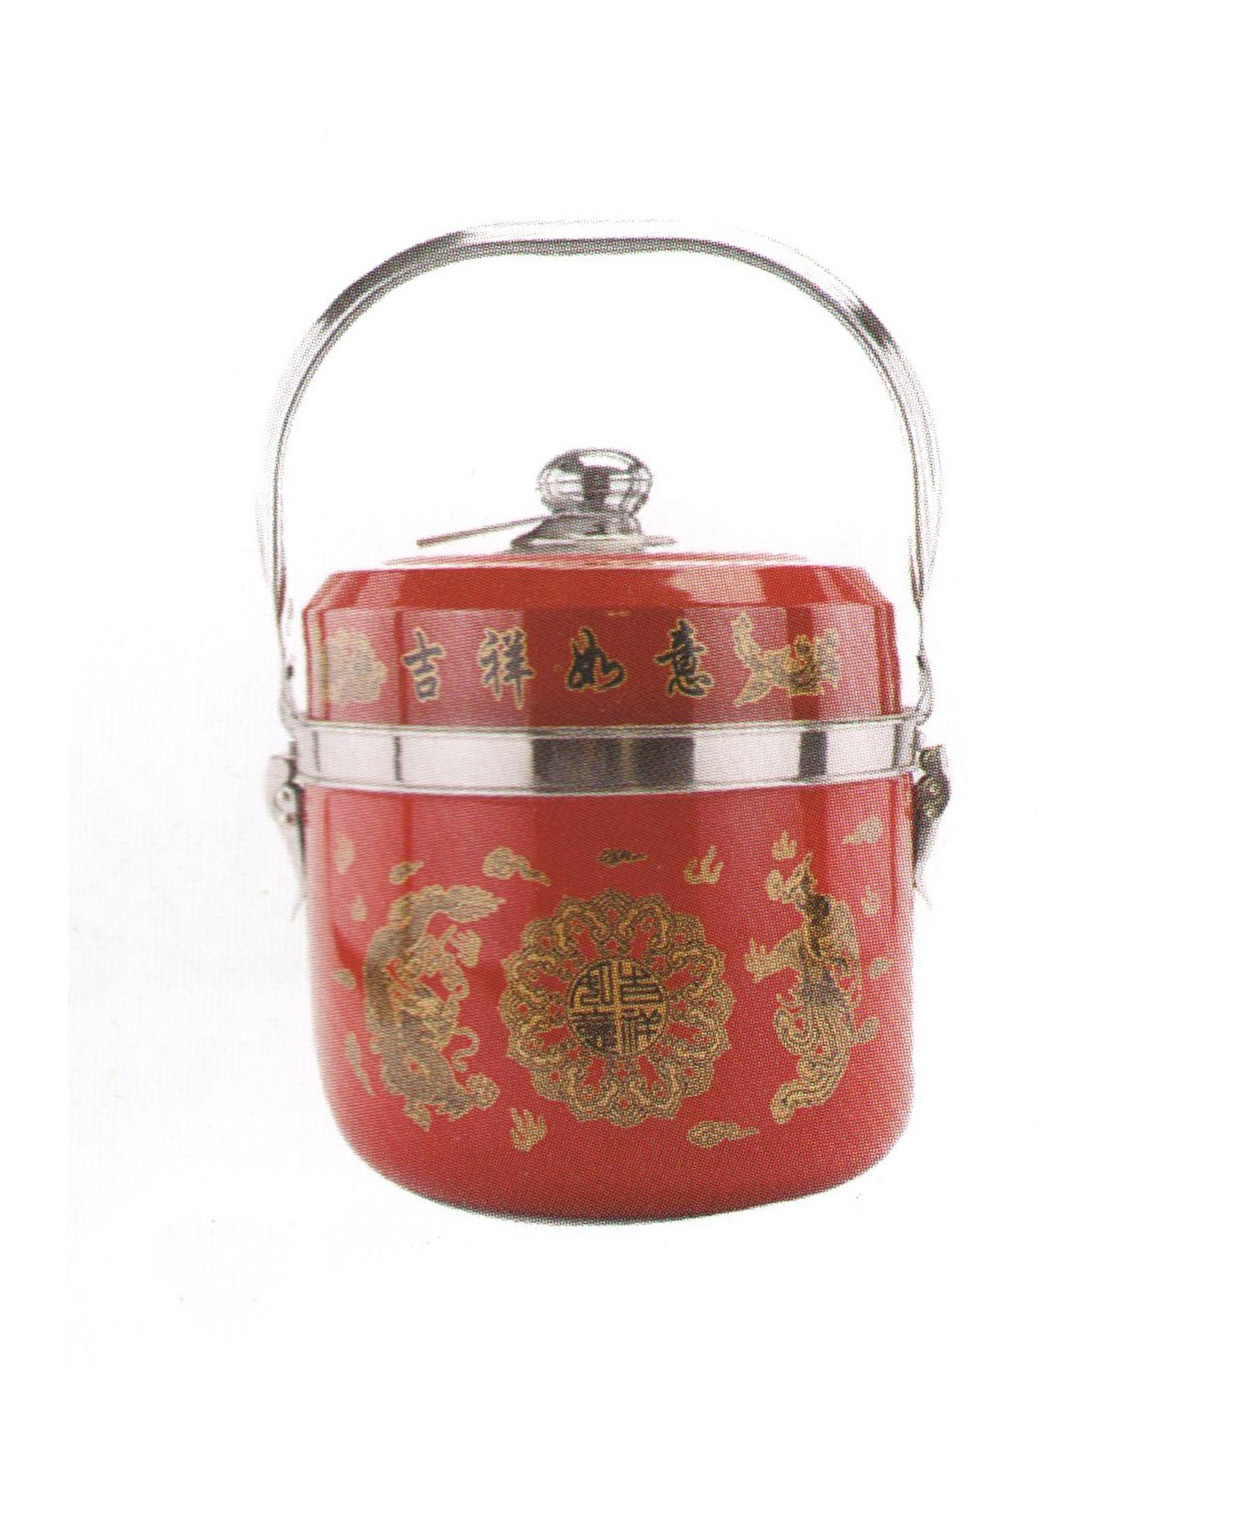 Fashion Stainless Steel Decorative Pattern Fire Free Reboiler Pot with Handle Cp017